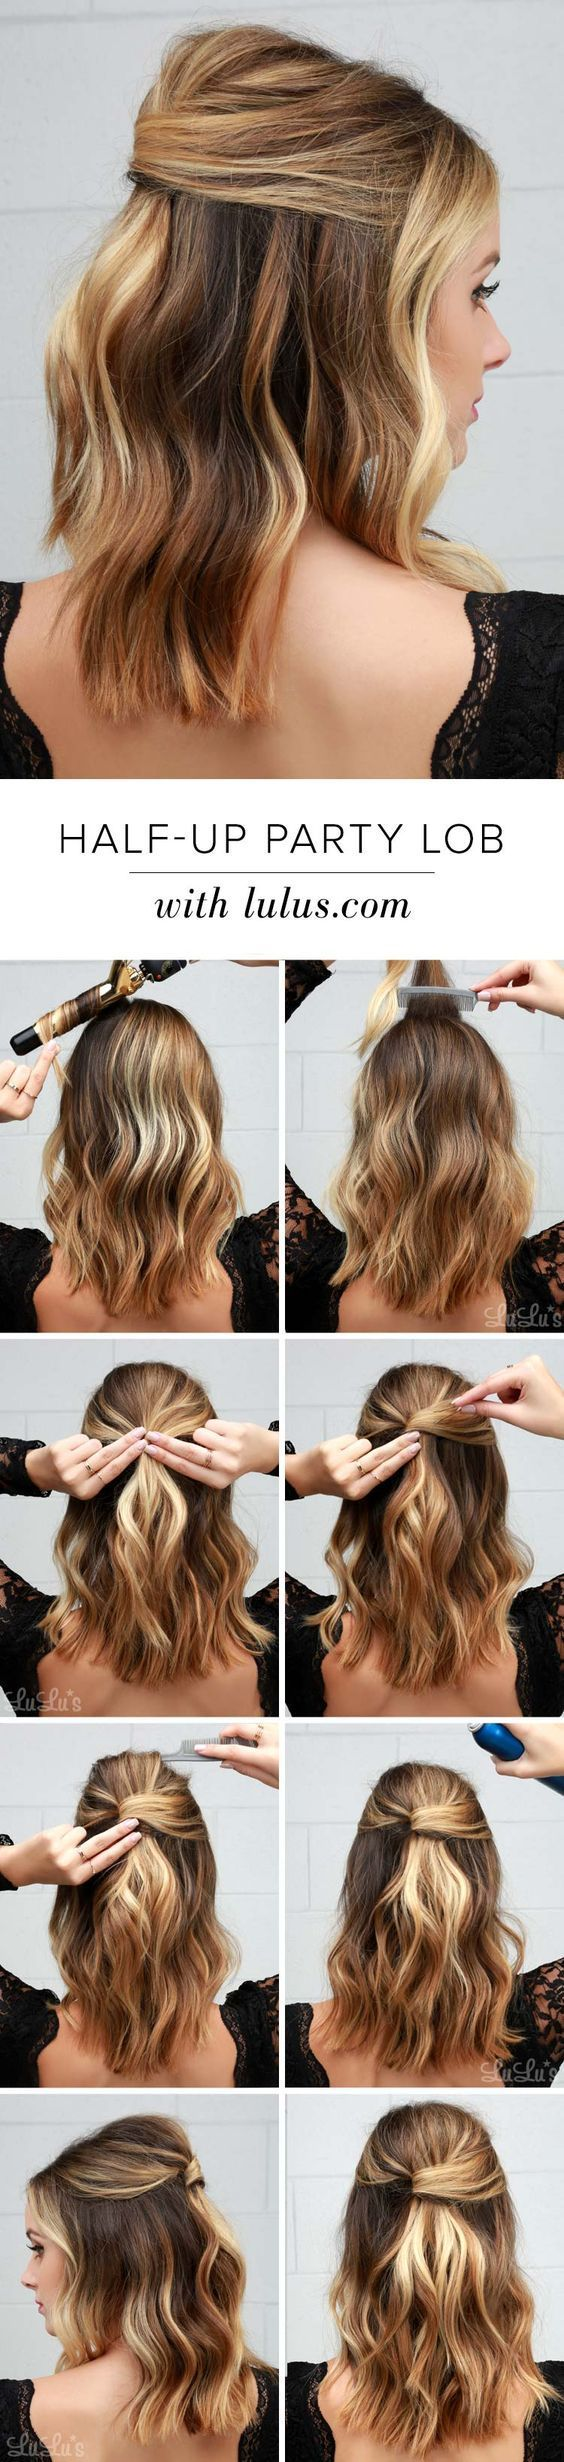 ways to style your lobs long bob hairstyle ideas pinterest